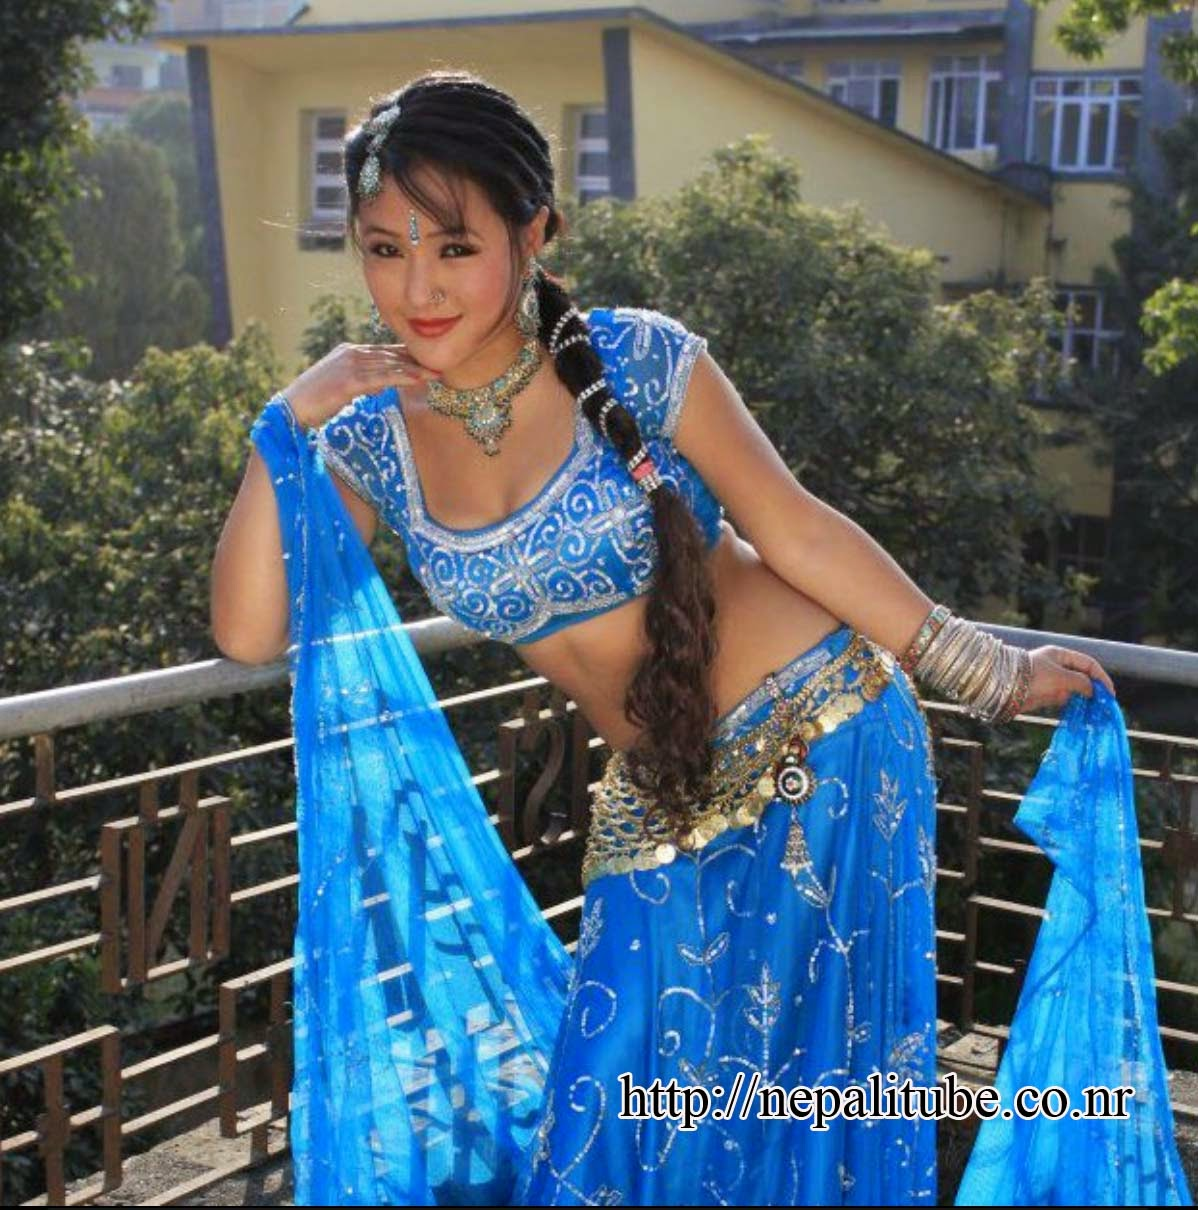 Latest Nepali Song Download On 320kbs: New Nepali Videos Download